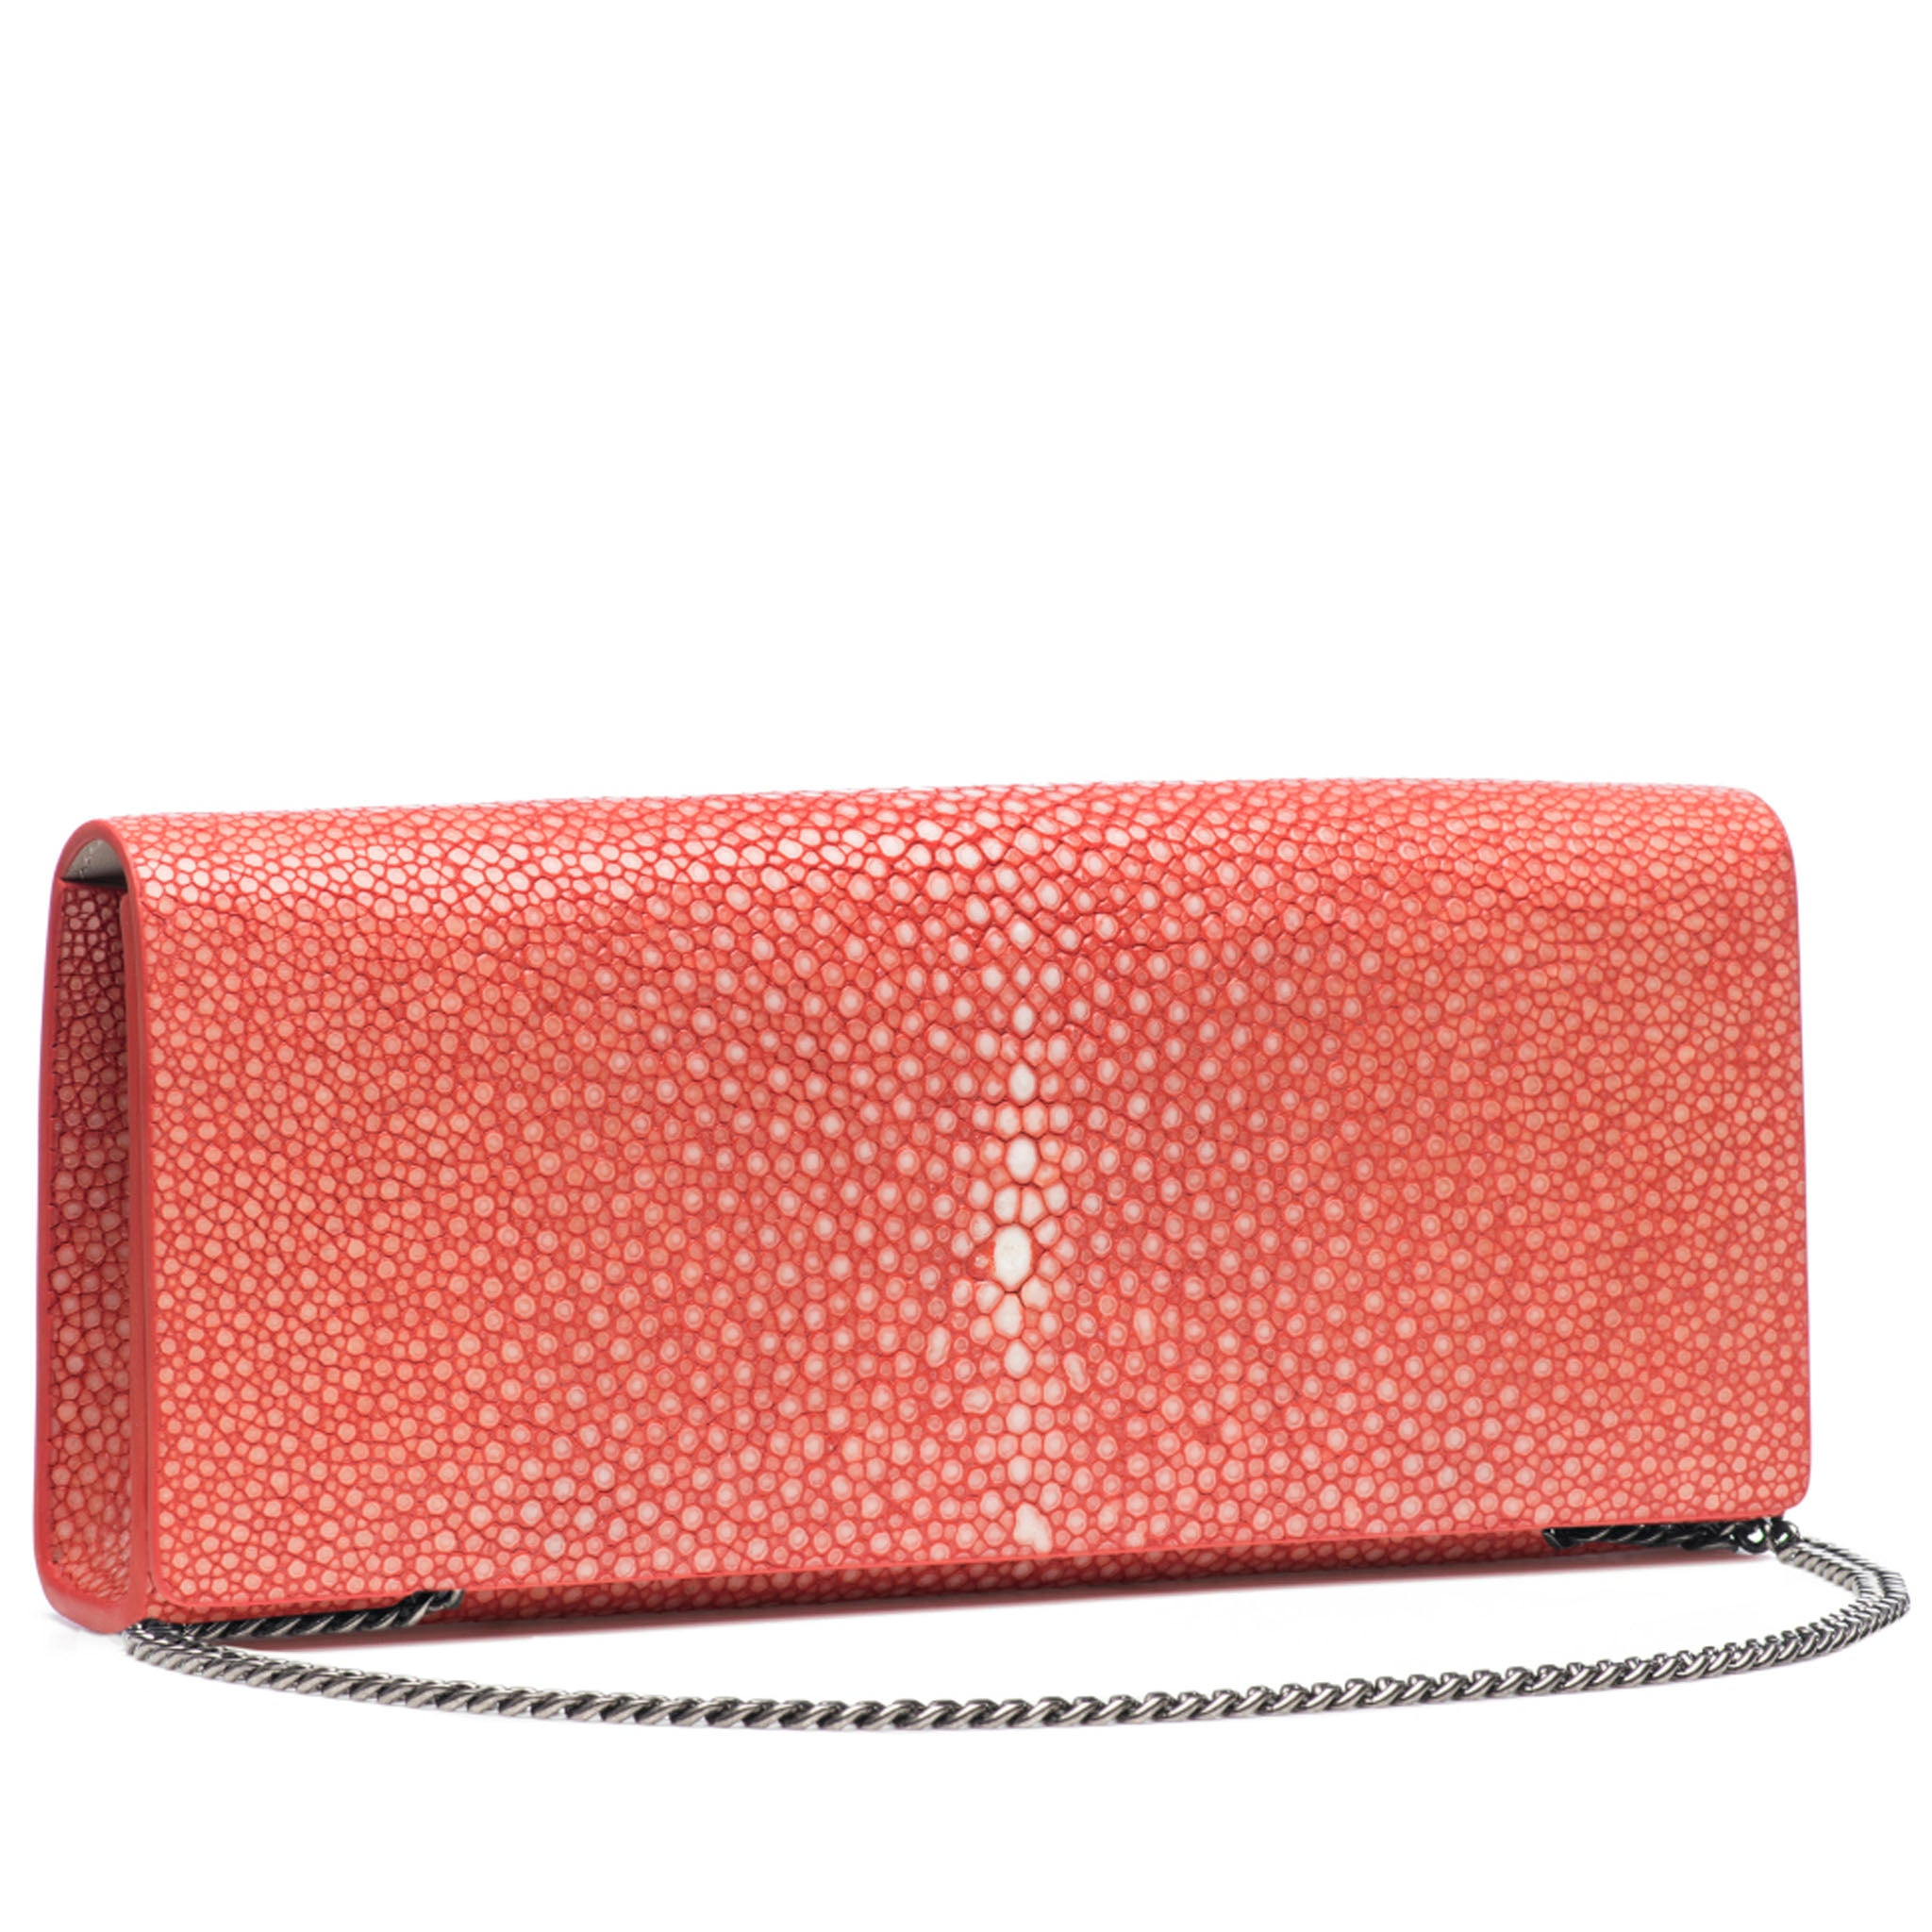 Hibiscus Shagreen Clutch Bag Front View With Chain Cleo - Vivo Direct